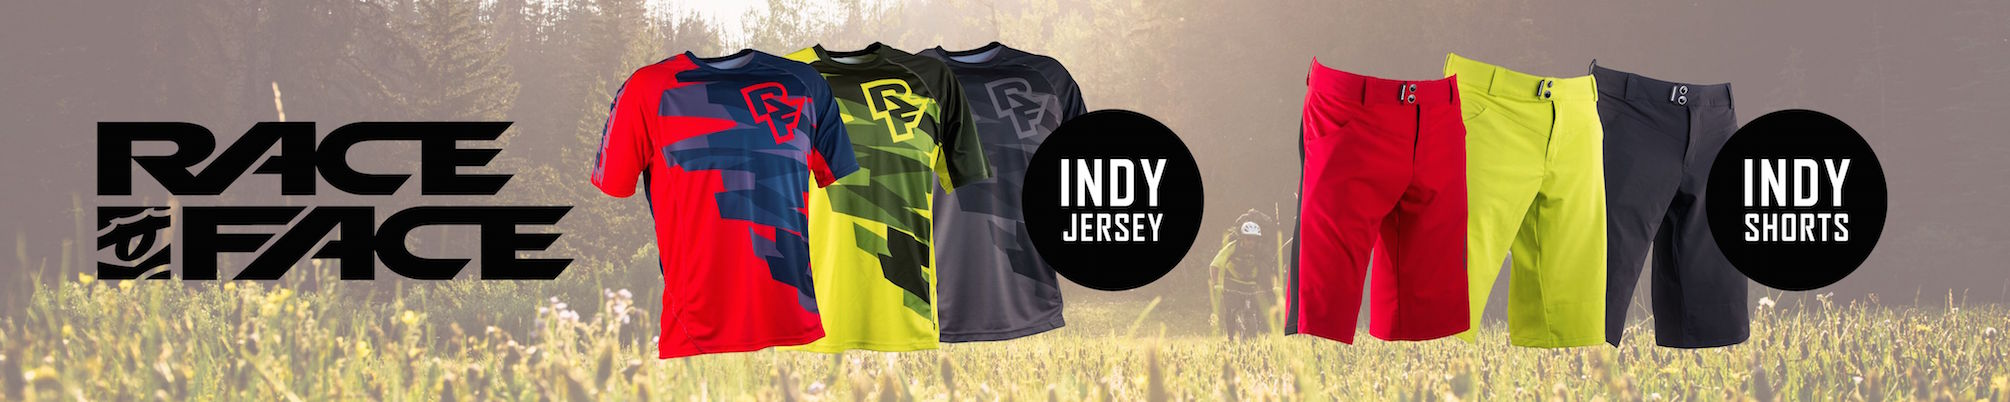 Race Face Indy Kit banner